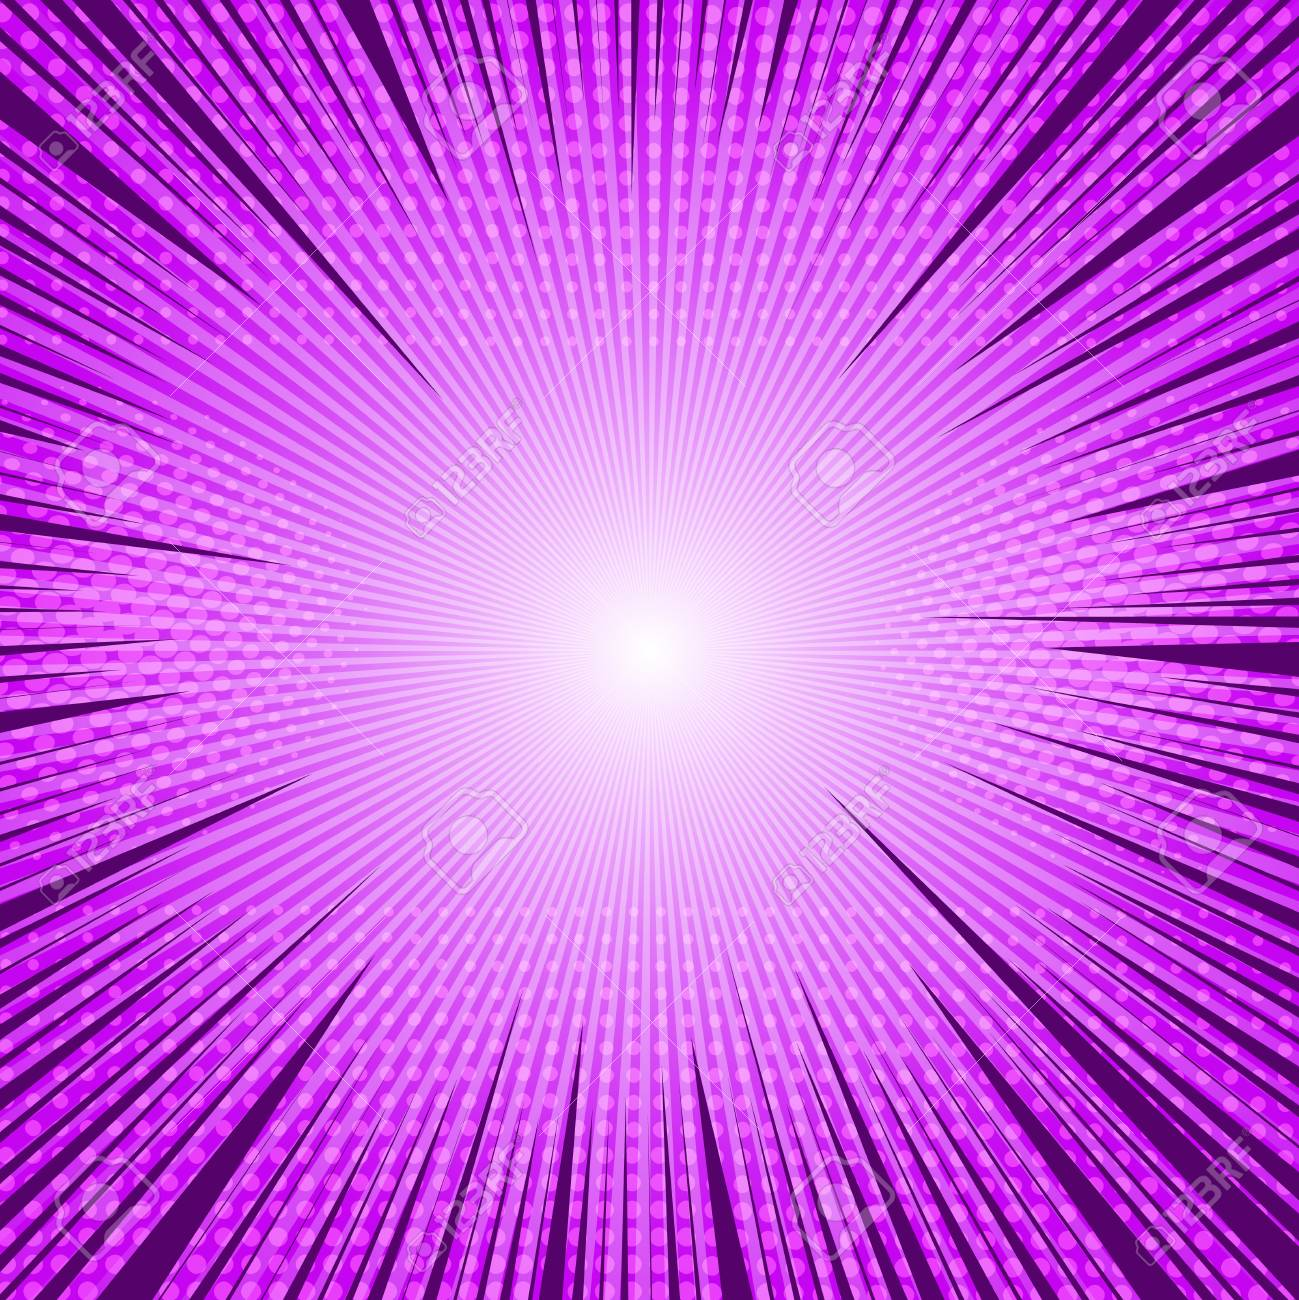 Comic Purple Light Blank Background With Rays Radial And Halftone Royalty Free Cliparts Vectors And Stock Illustration Image 98113898